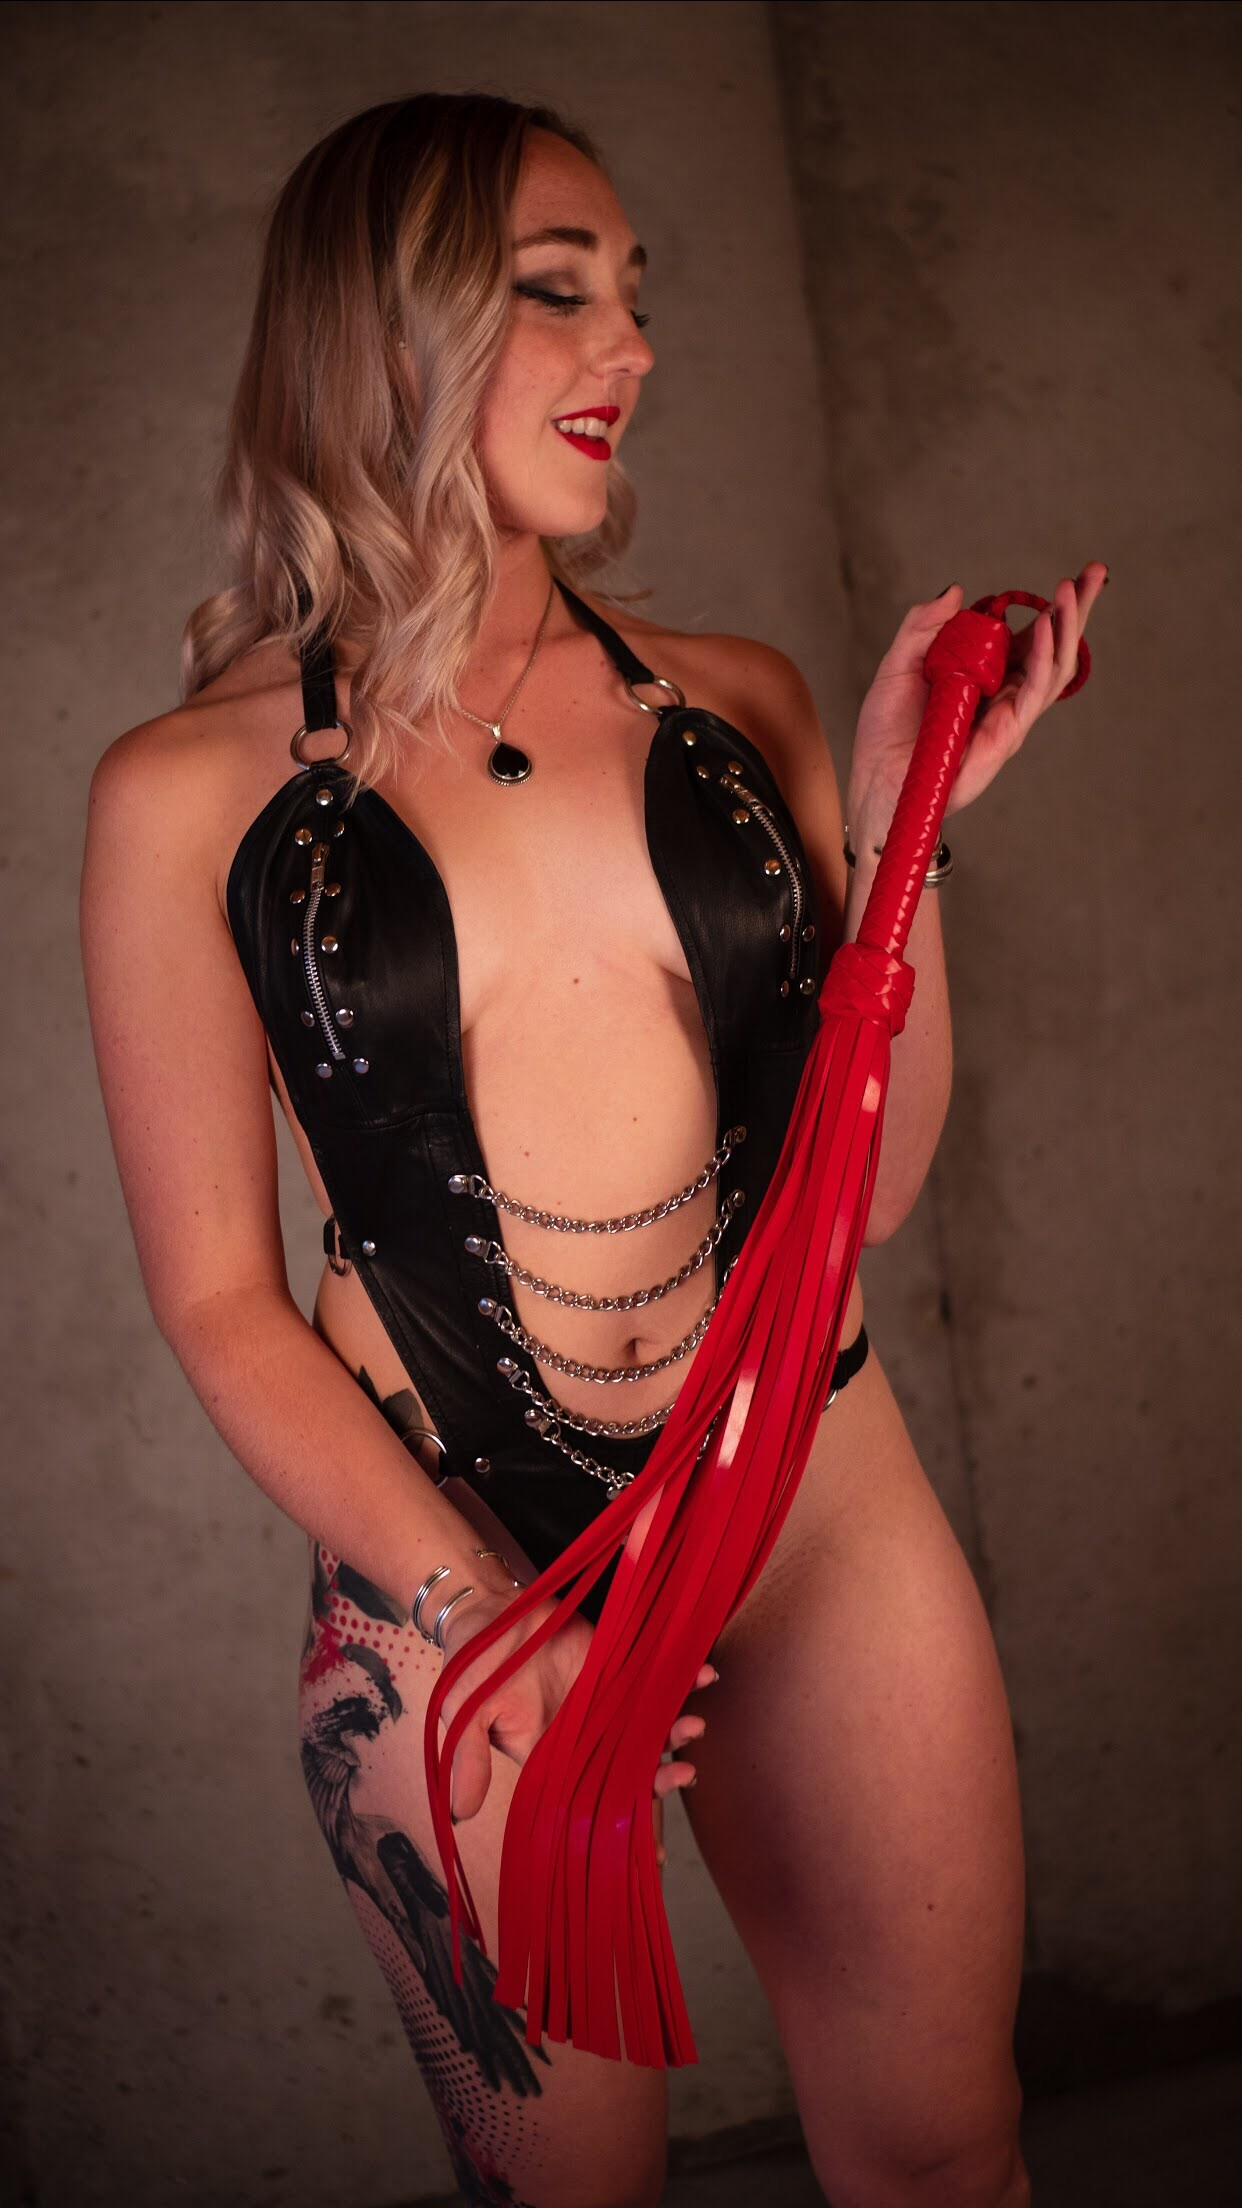 THE SILICONE MASTER FLOGGER